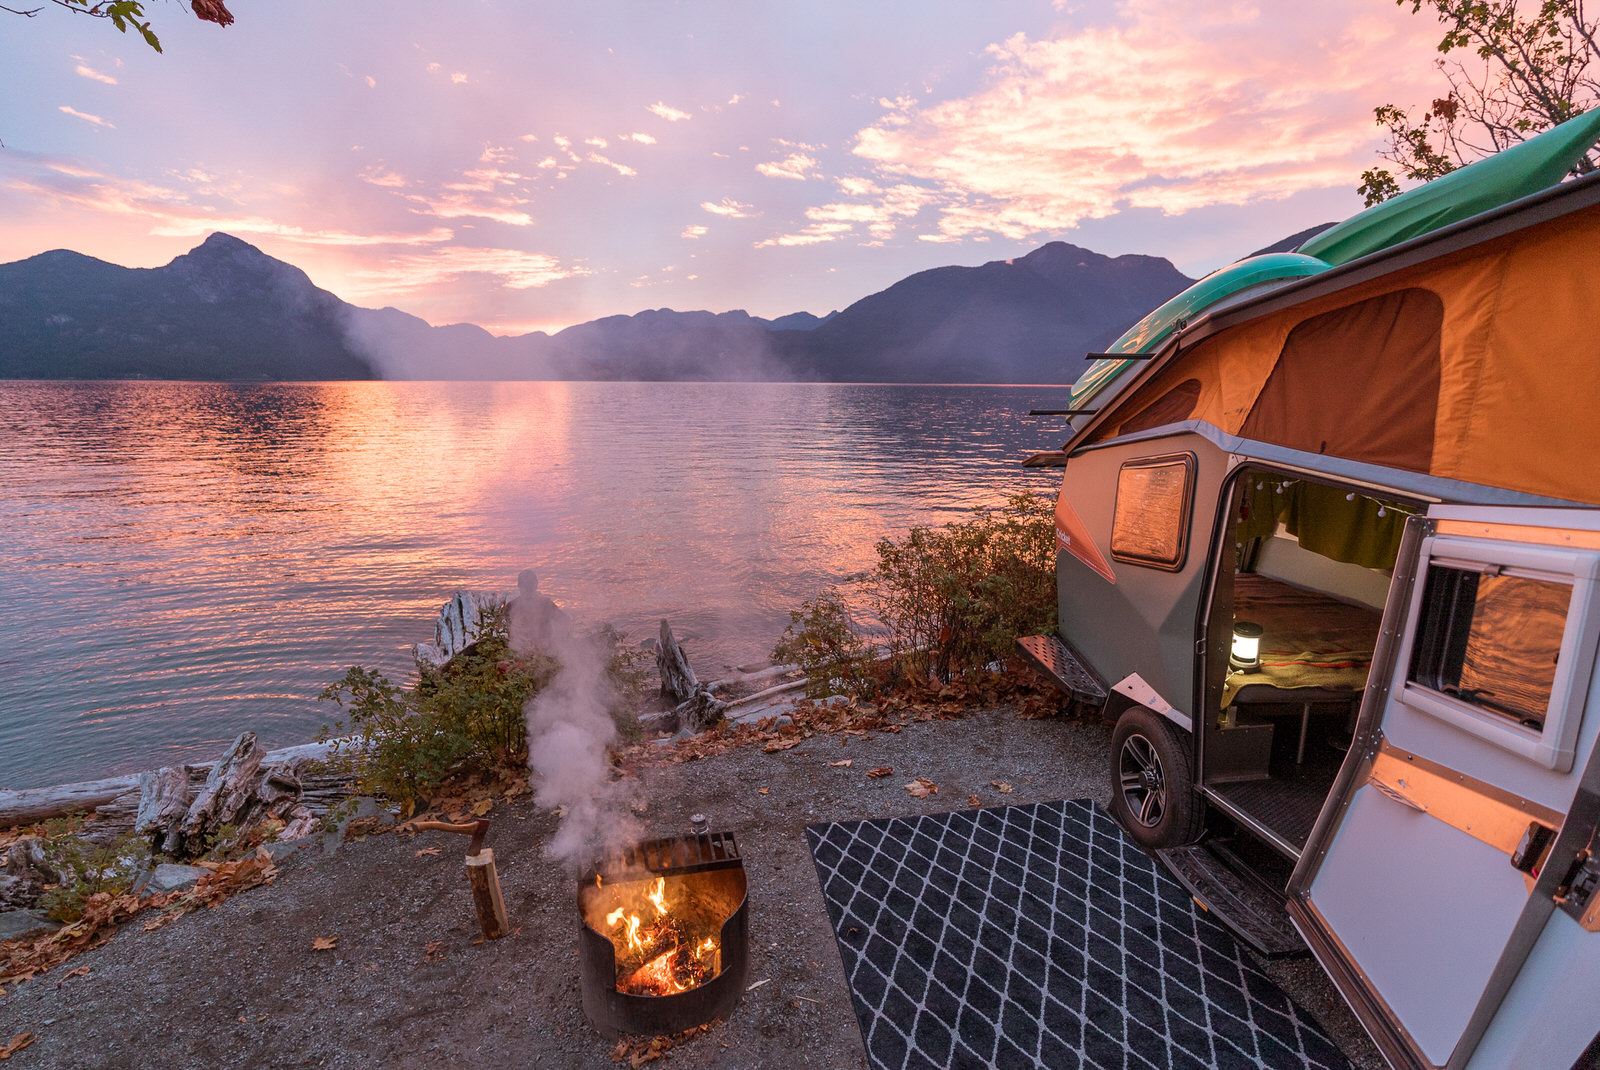 Outdoorsy RV parked by a lake at sunset